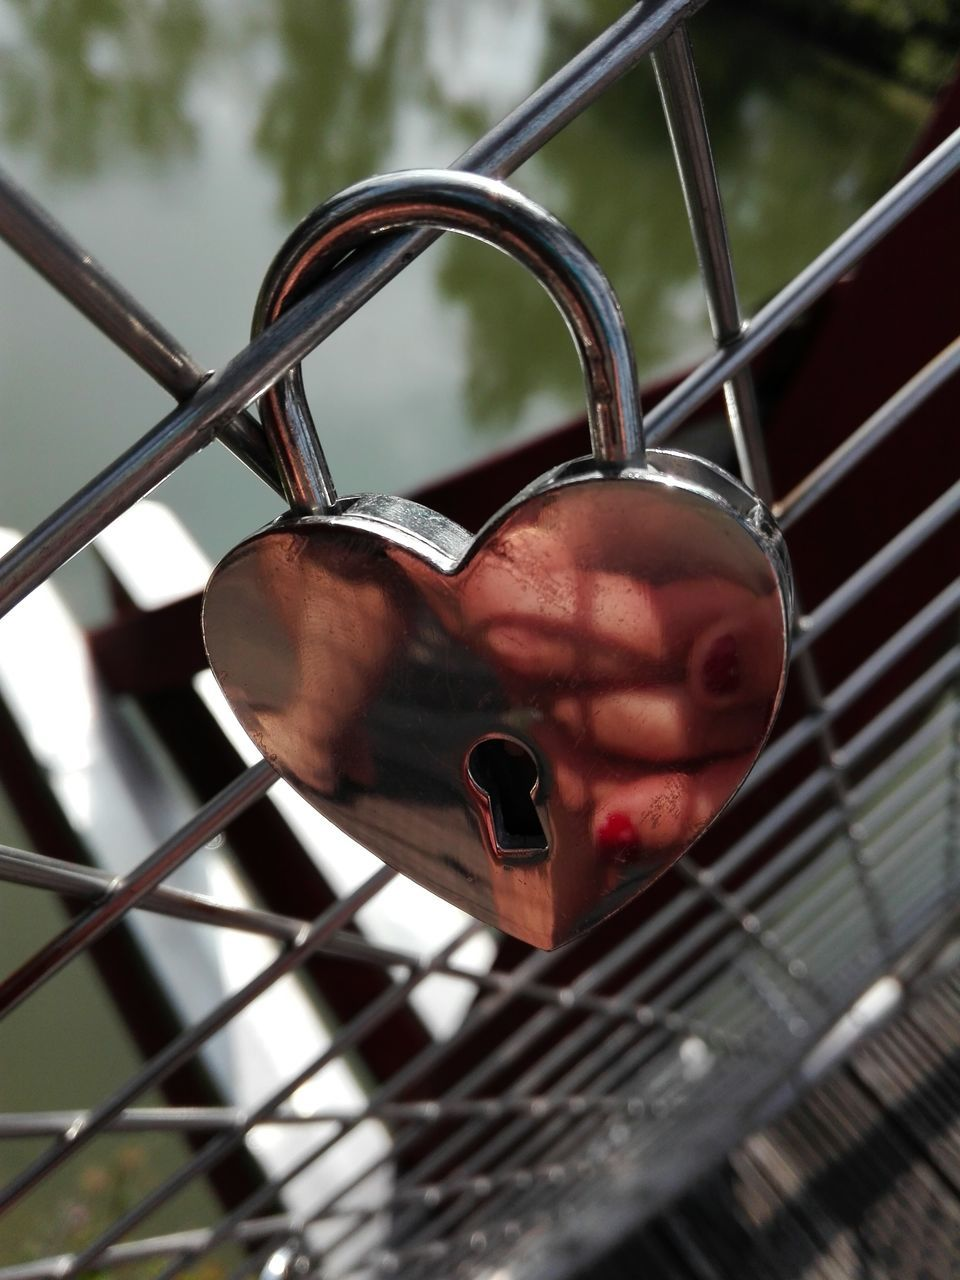 metal, protection, security, safety, day, close-up, no people, lock, outdoors